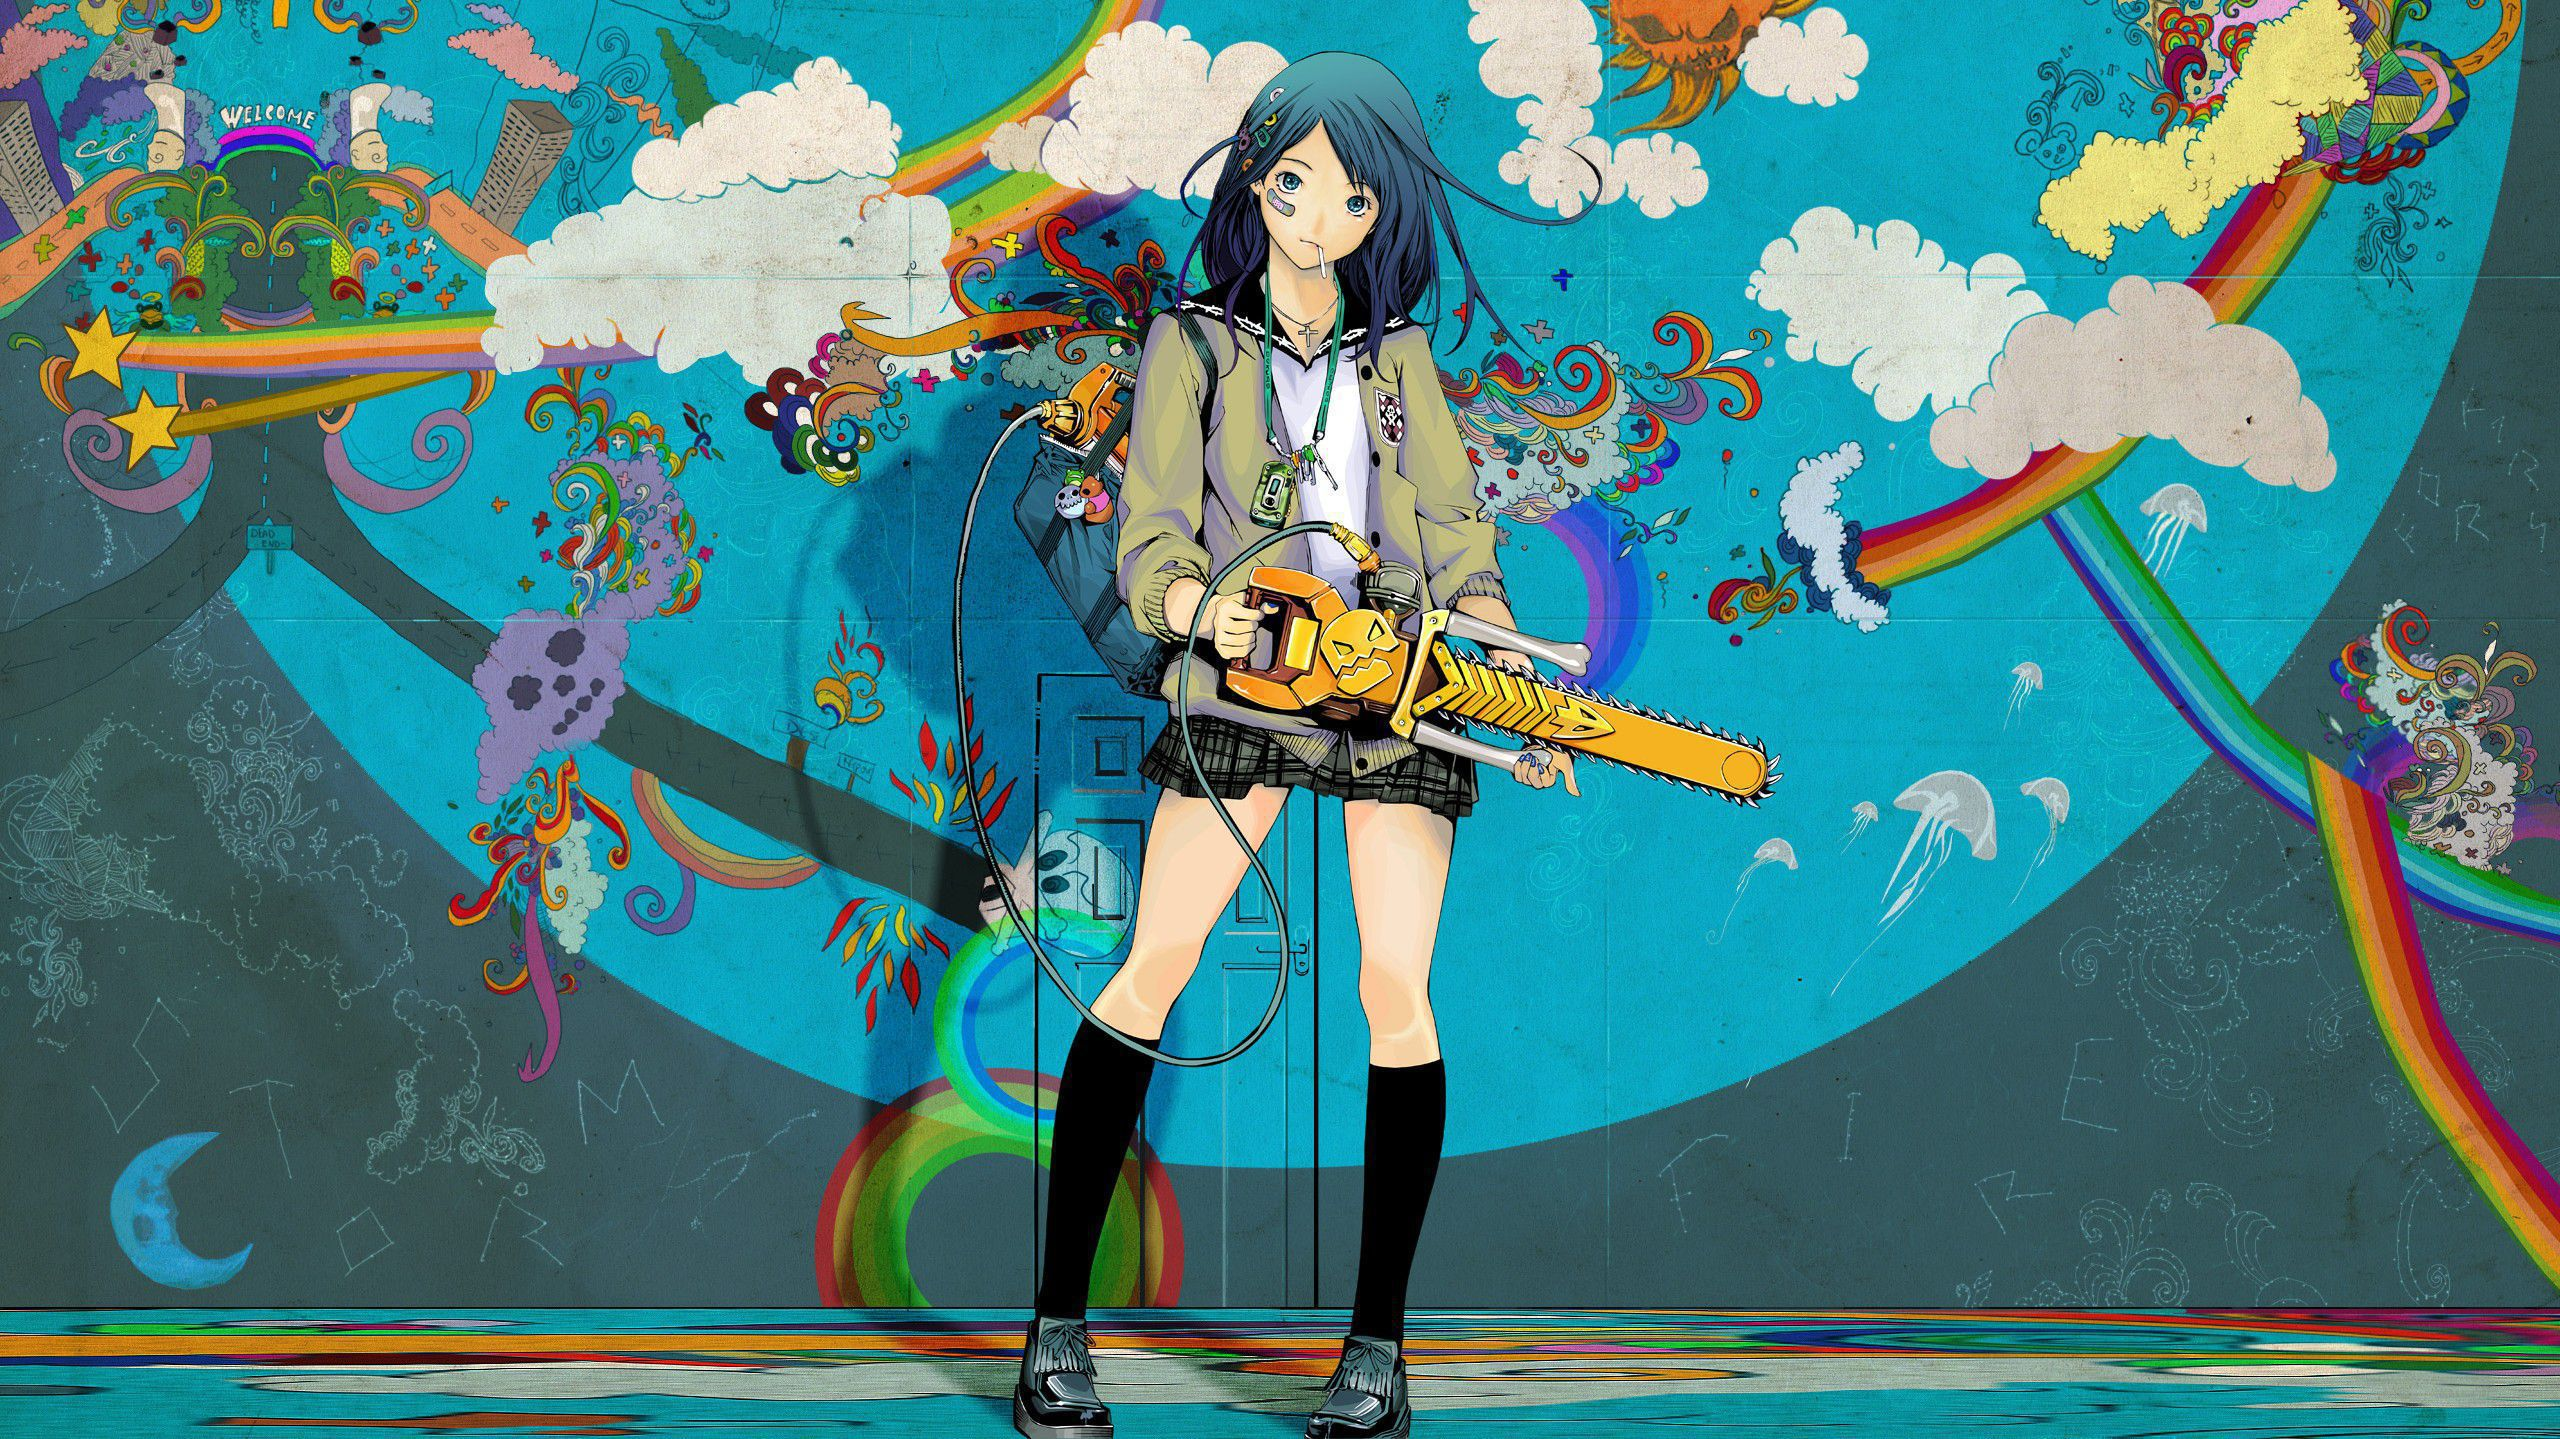 Air gear wallpapers backgrounds - Wallpaper for computer anime ...